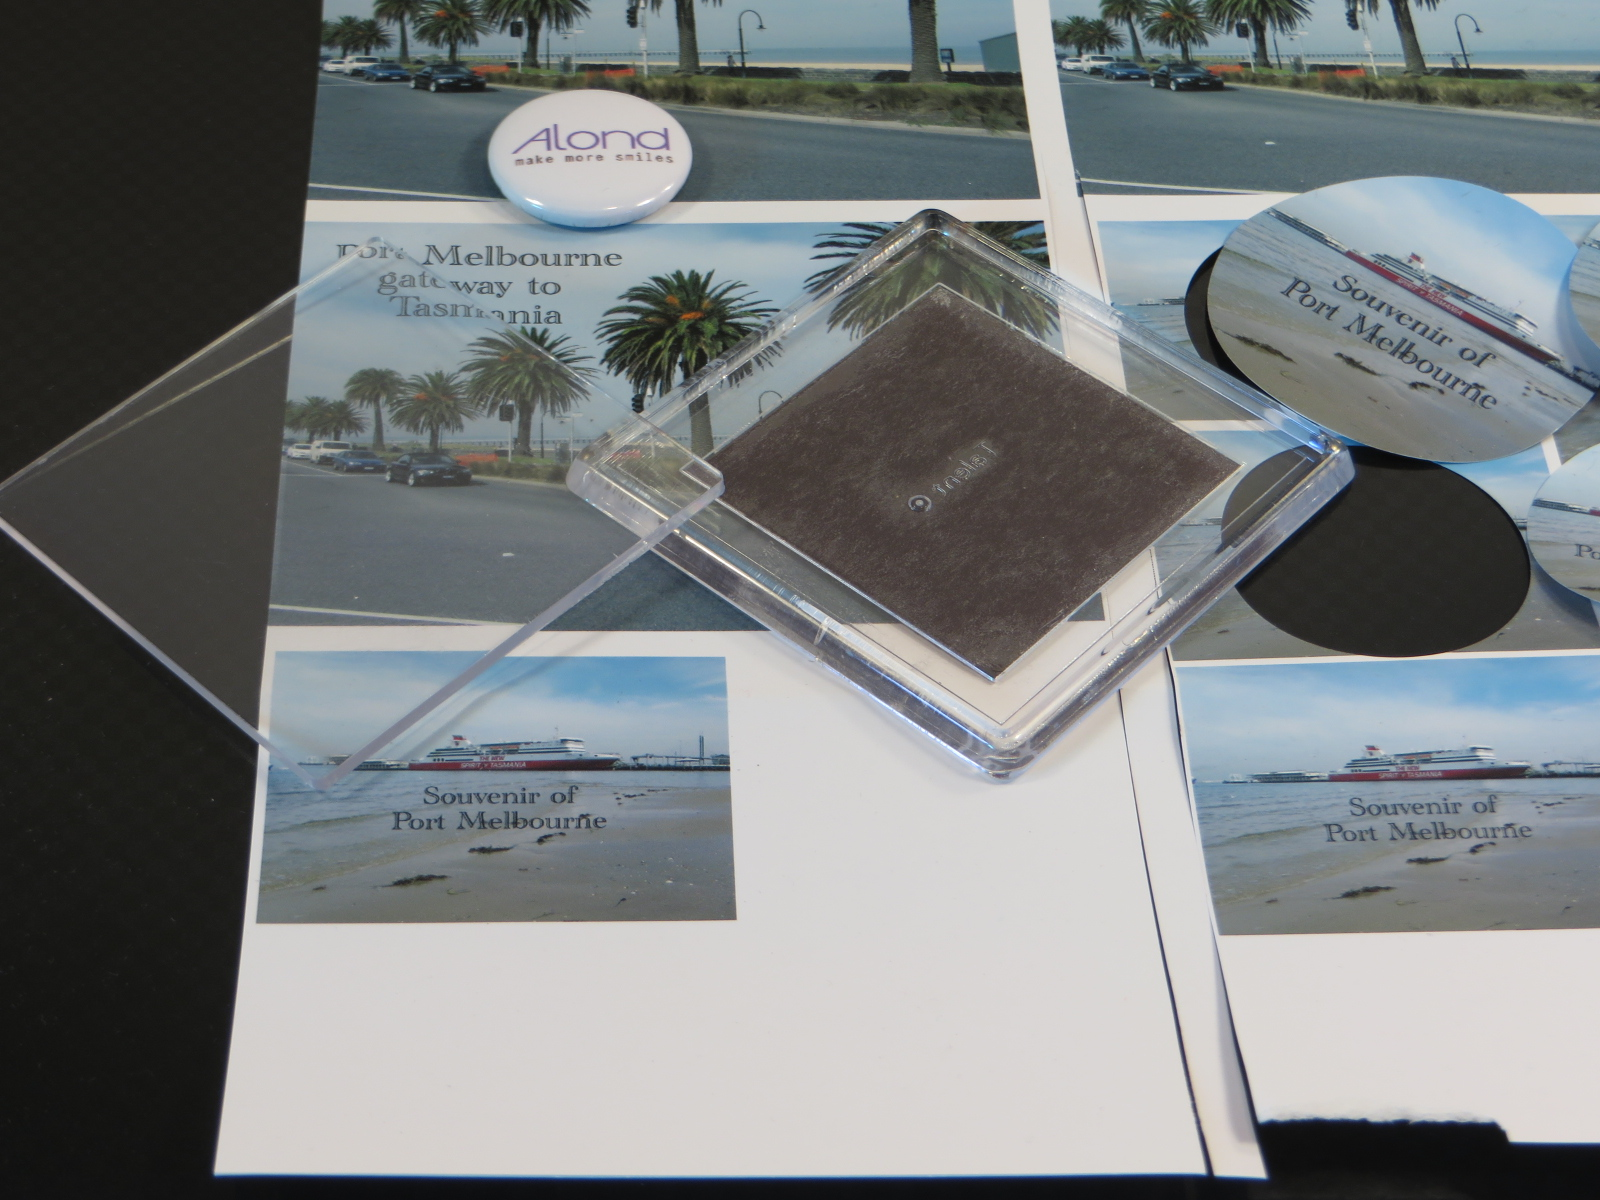 Showing Alond Snap badges with Port Melbourne scenery used to create souvenirs